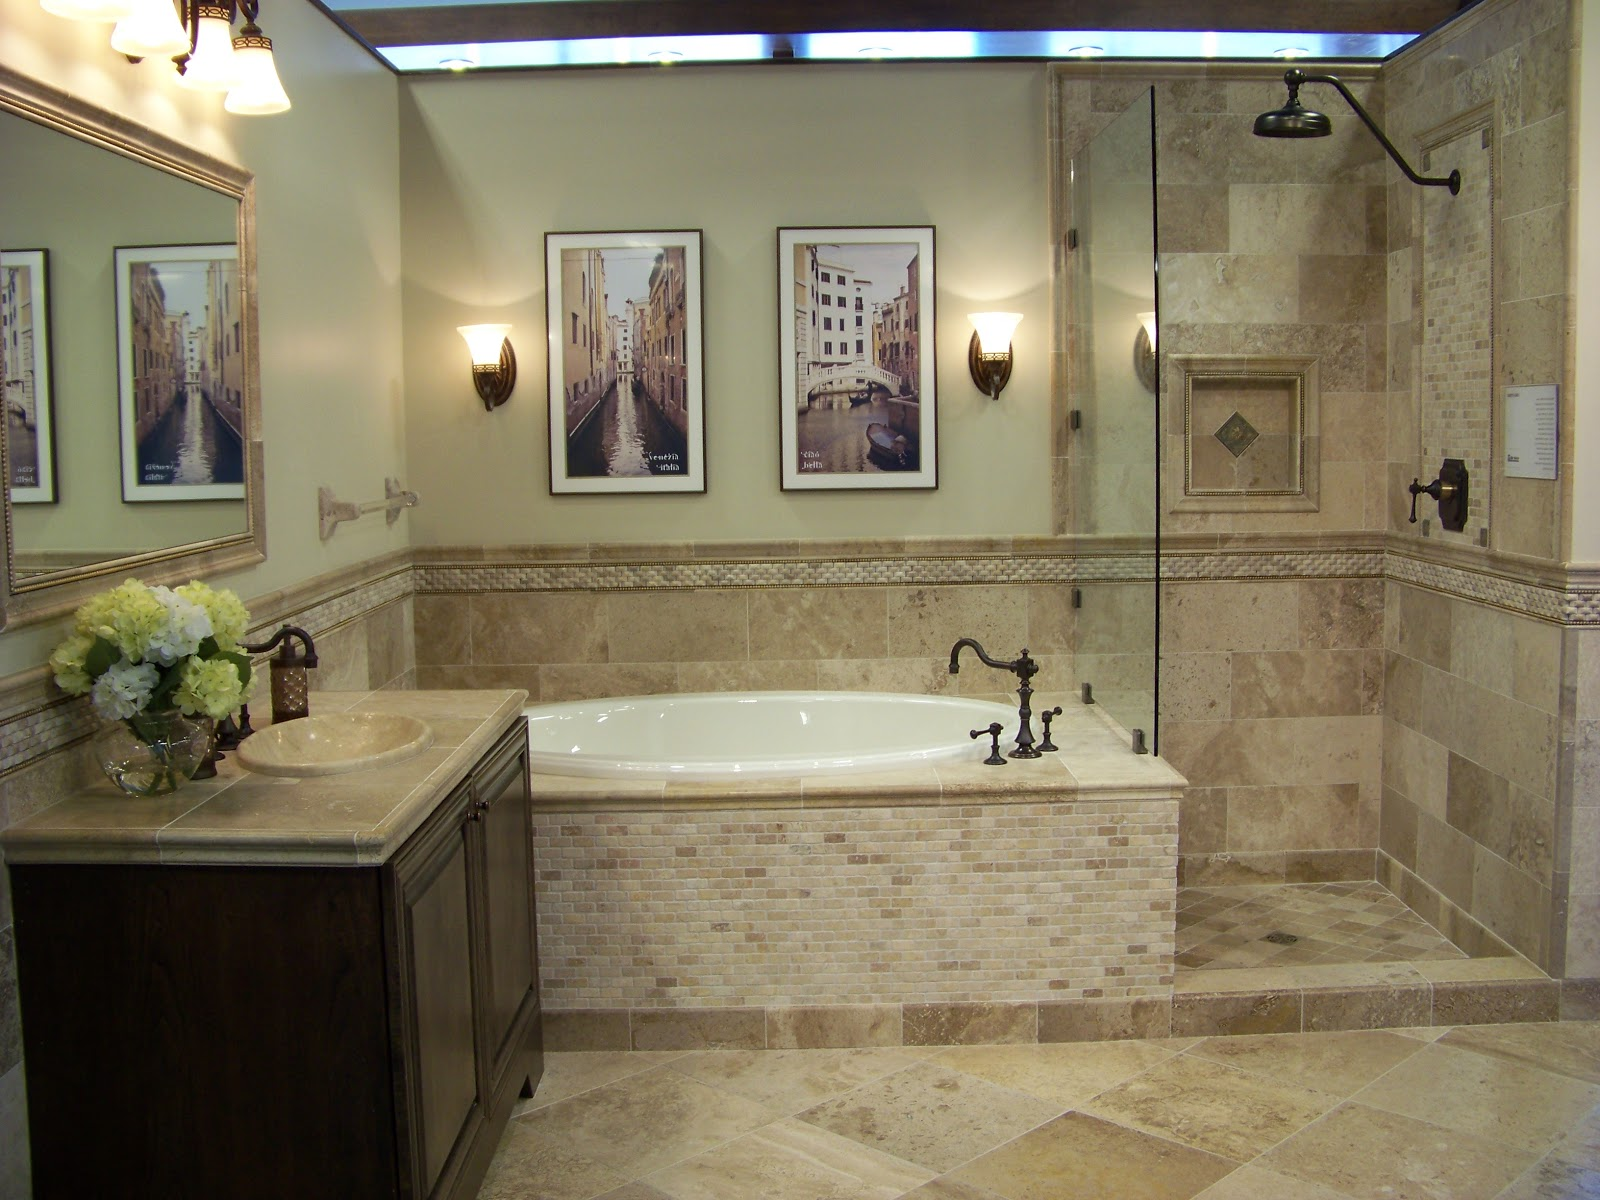 Home decor budgetista bathroom inspiration the tile shop for Pictures of bathroom tiles designs